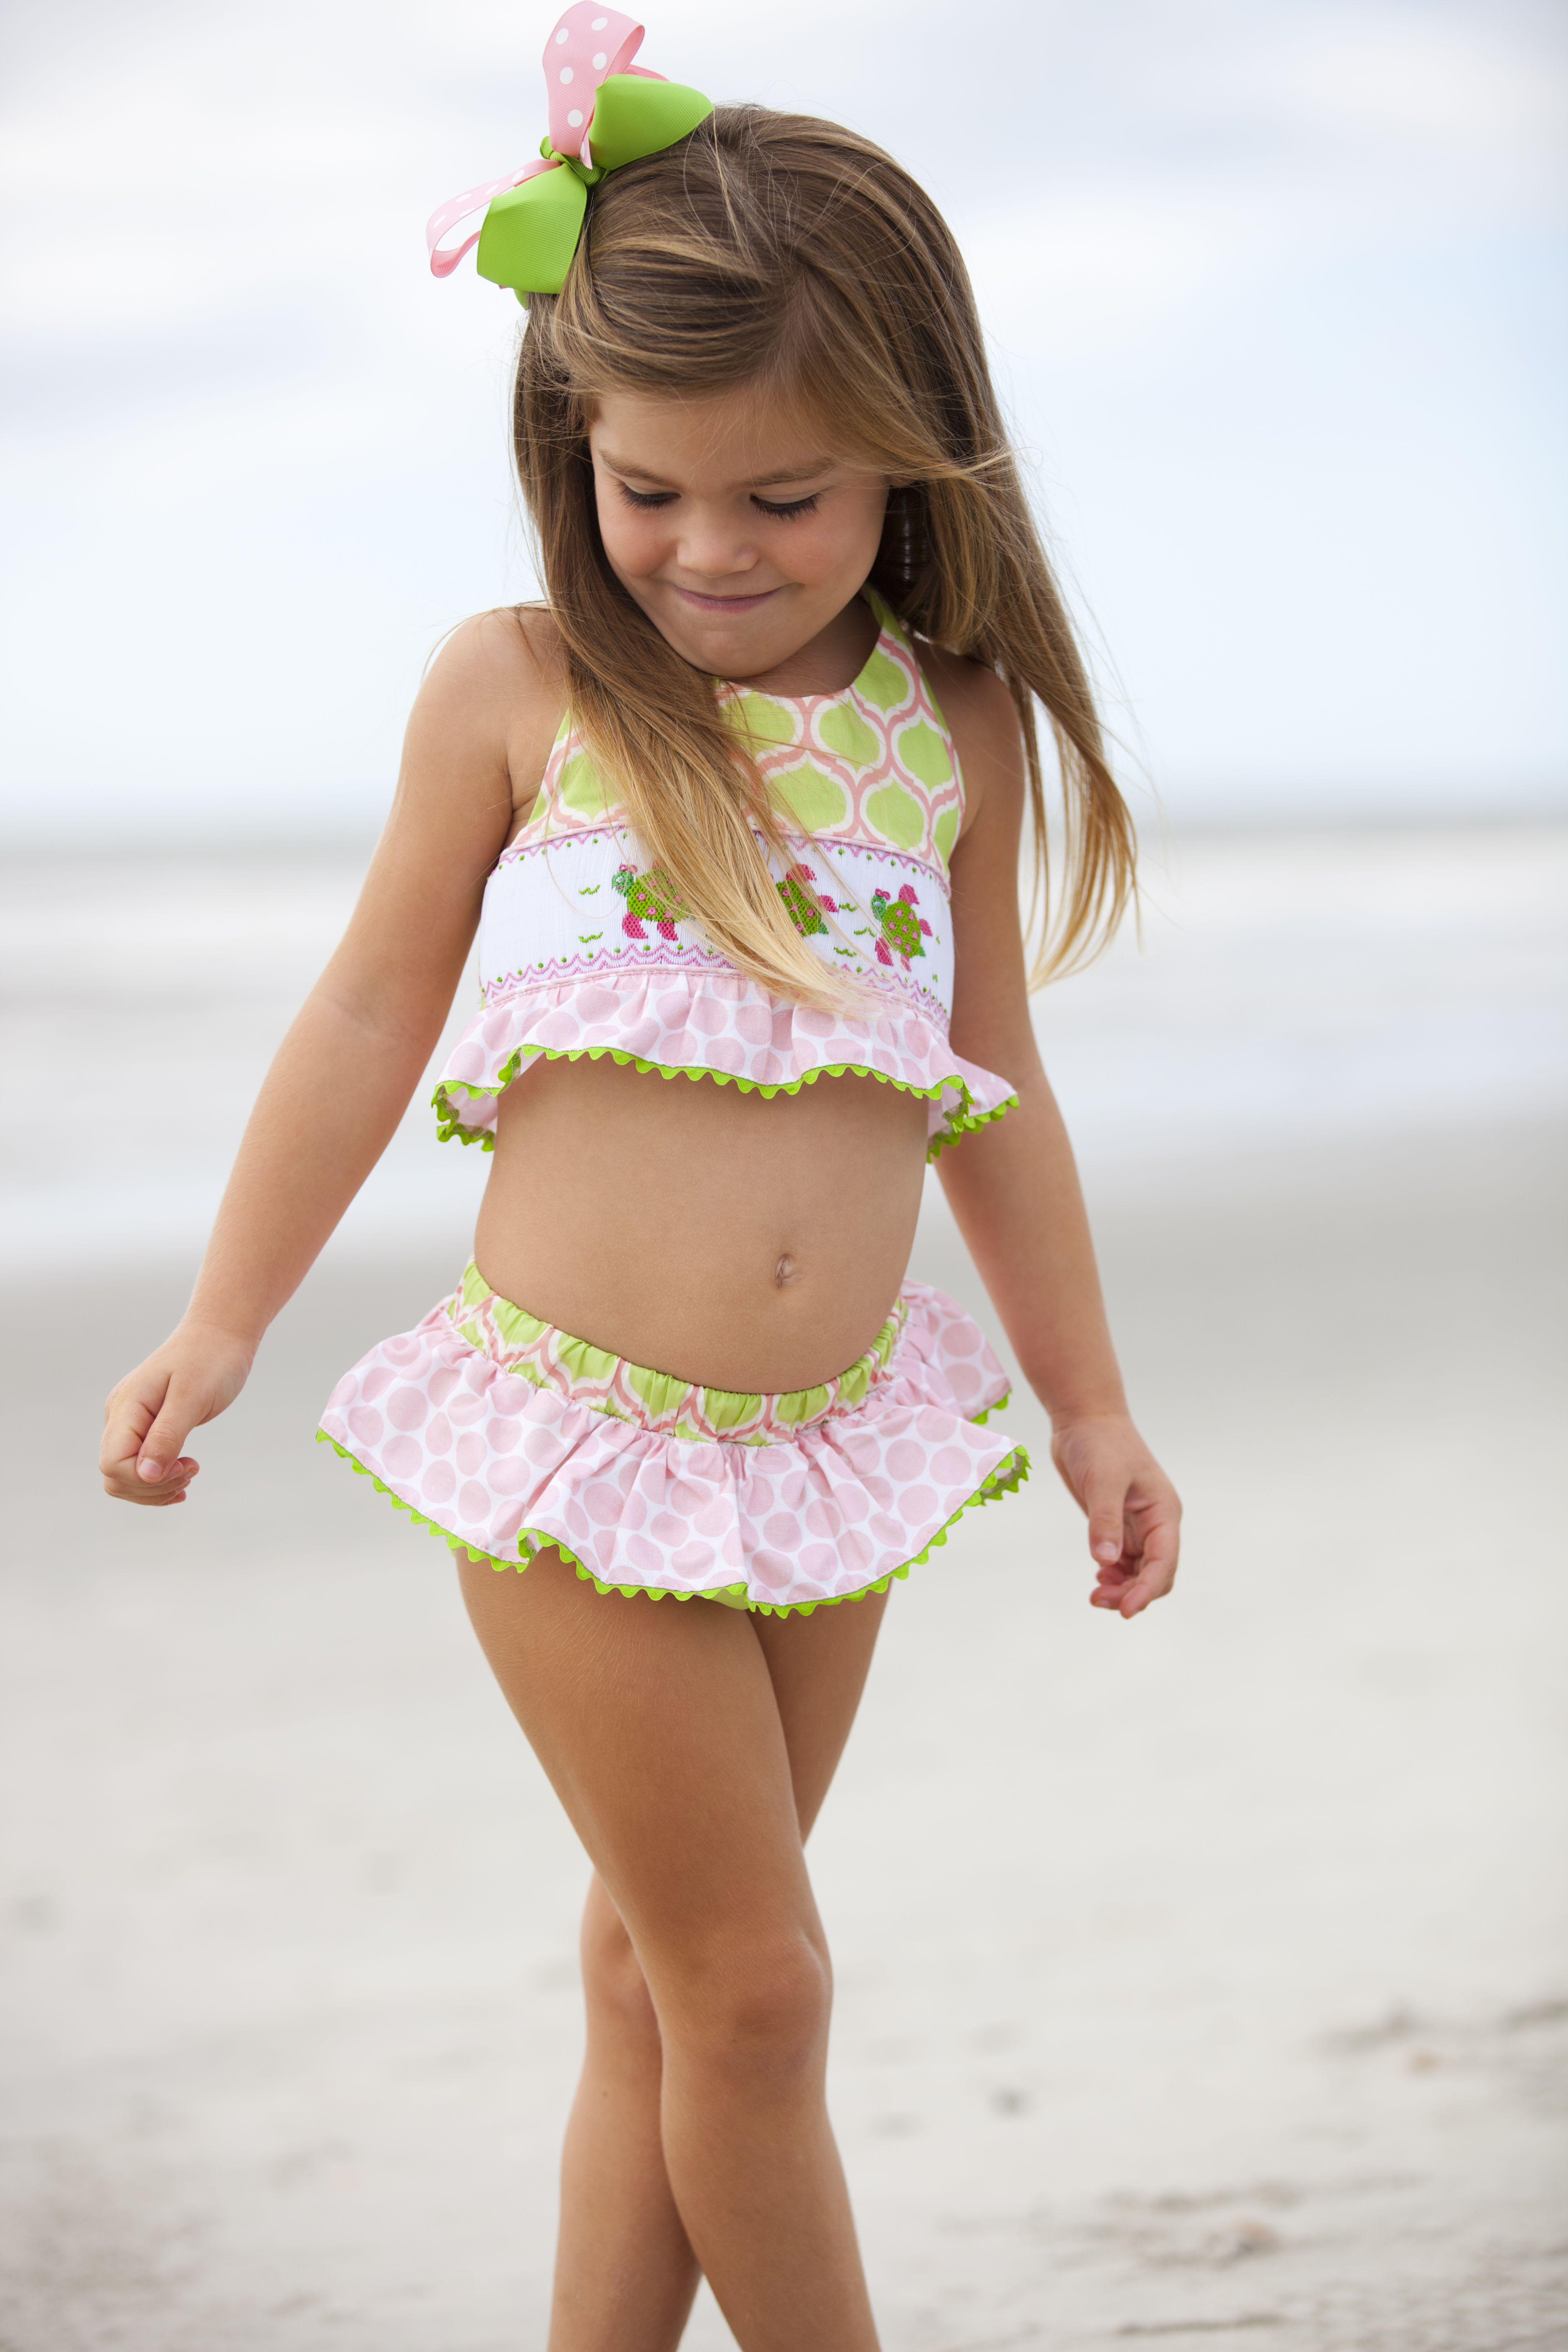 litastmaterlo.gq's large selection of girls' swimwear ranges from funky two-pieces to warm cover-ups, popular board shorts, and basic one-pieces. Keeping kids protected while wearing their favorite colors and patterns is easy with a variety of swimwear for girls, from UPF 50+ rash guards to .